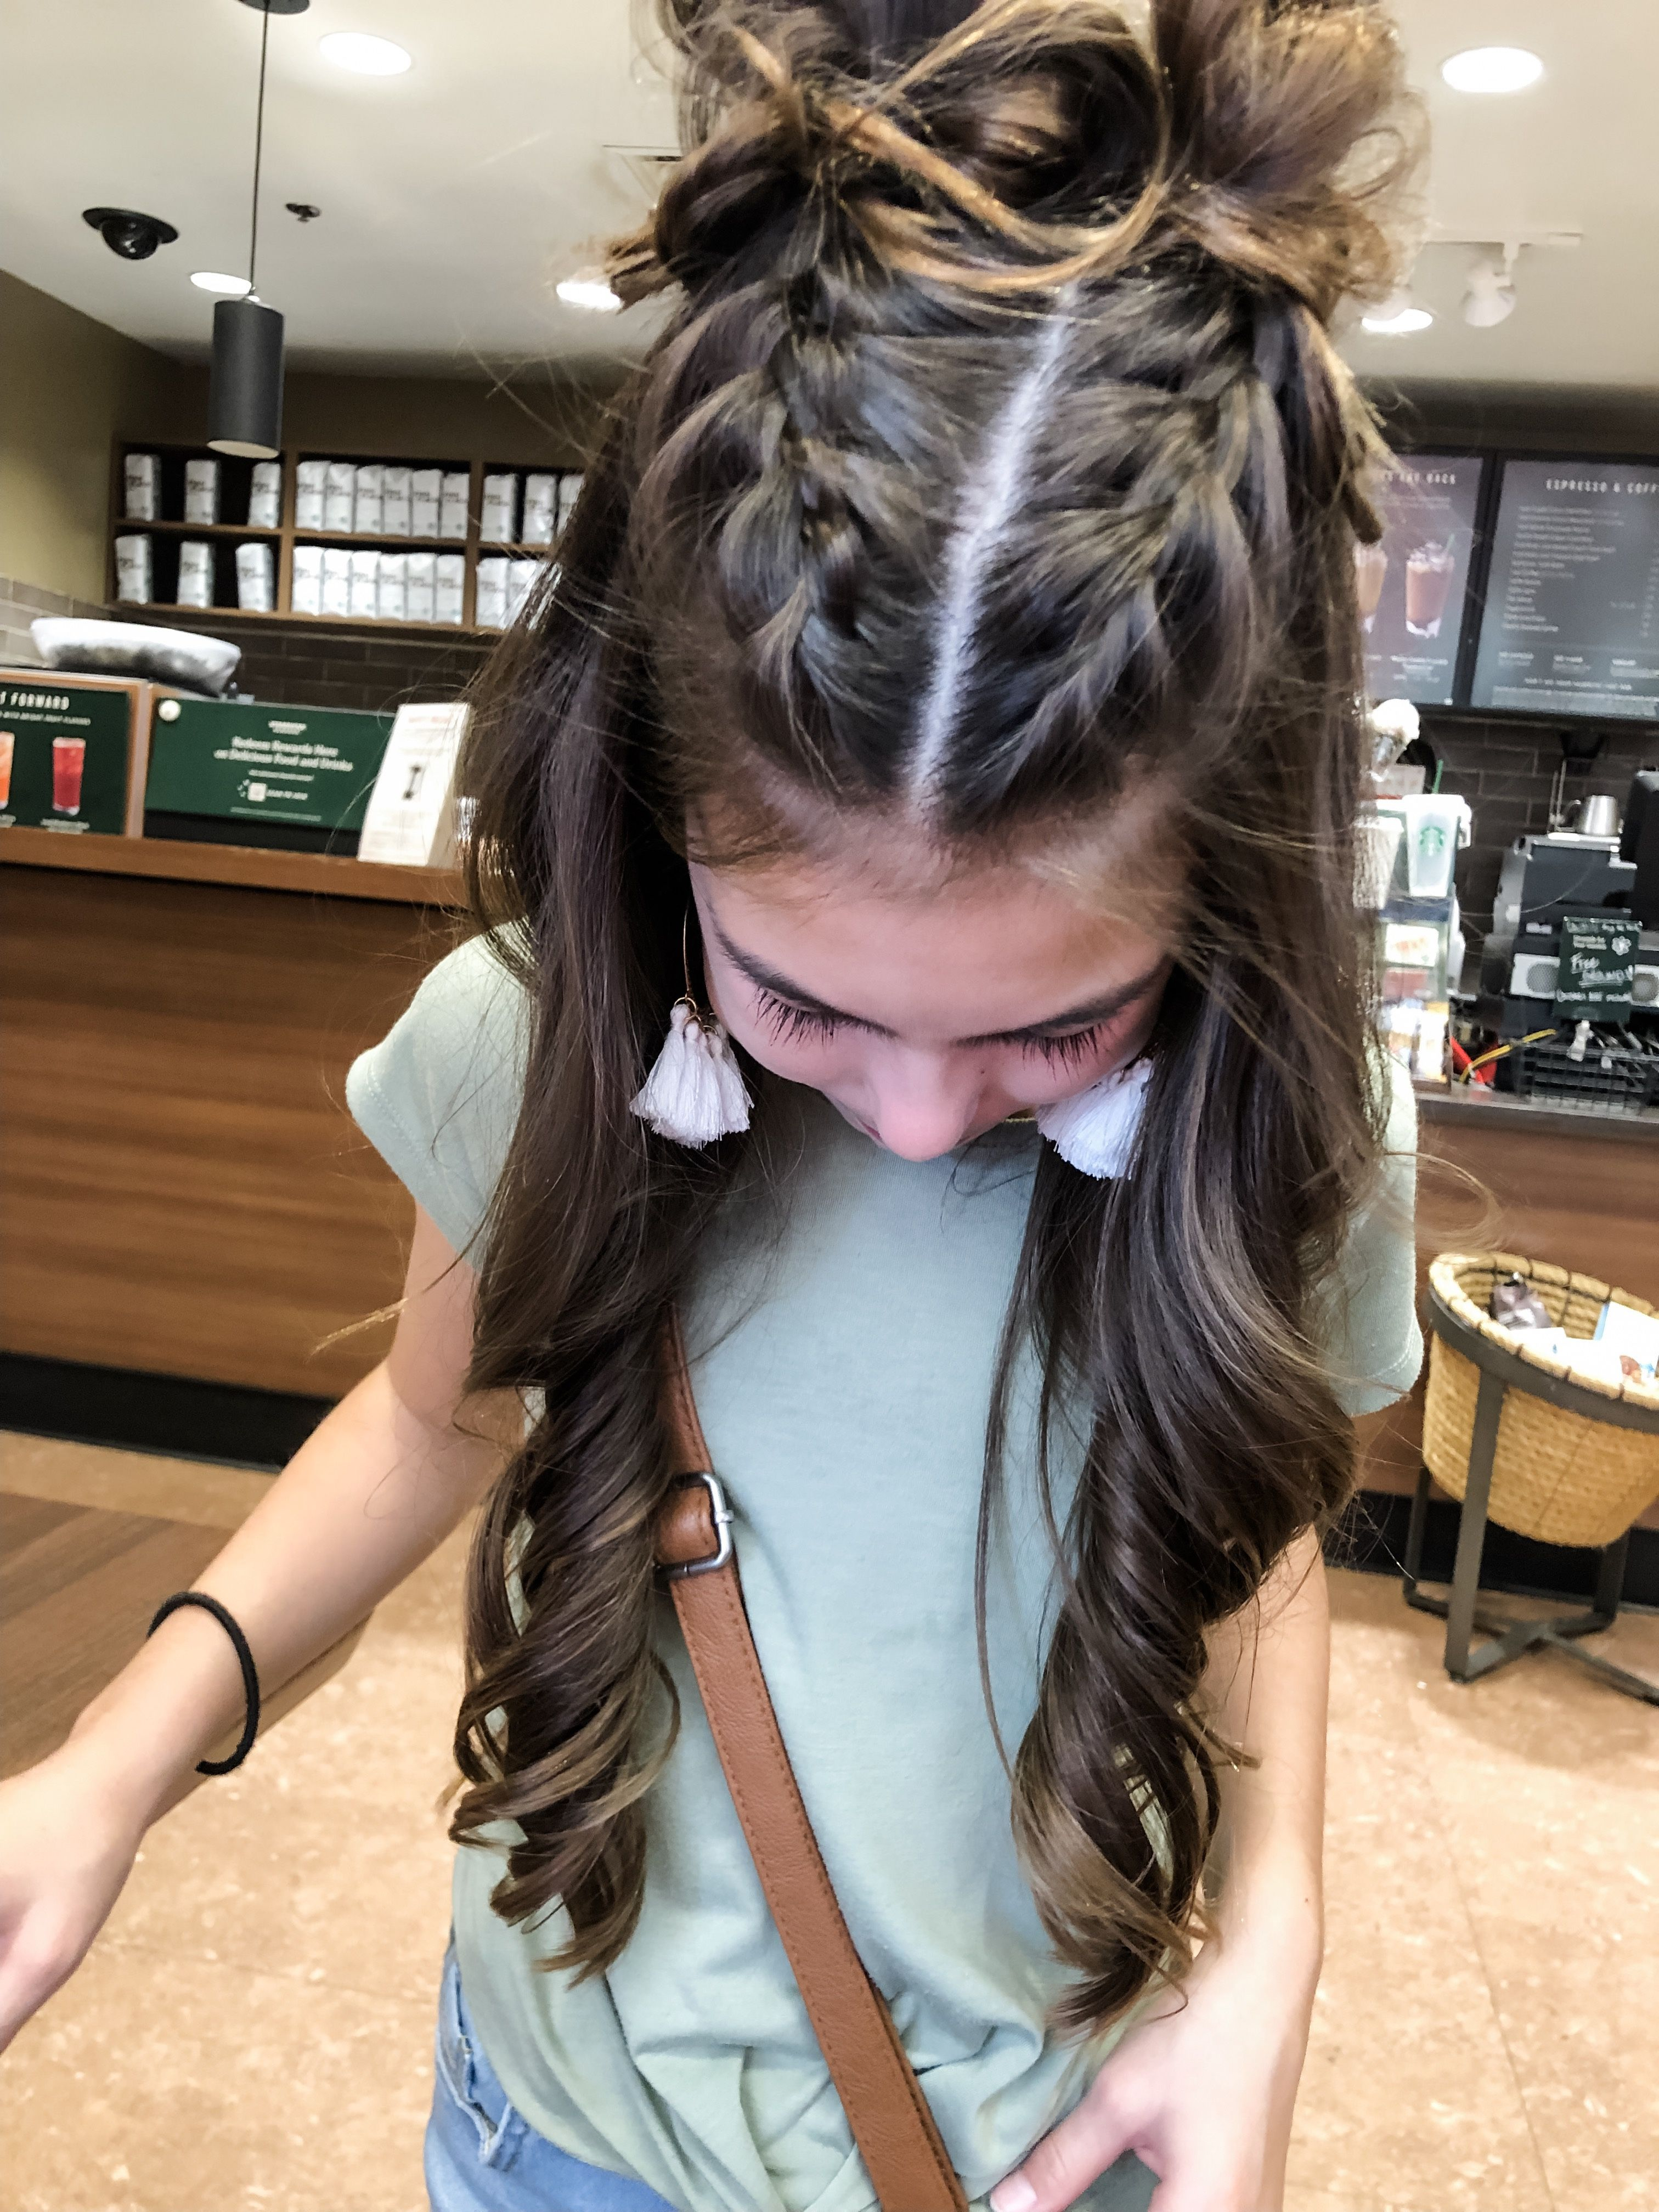 first day of school hairstyle. split braids with curly hair